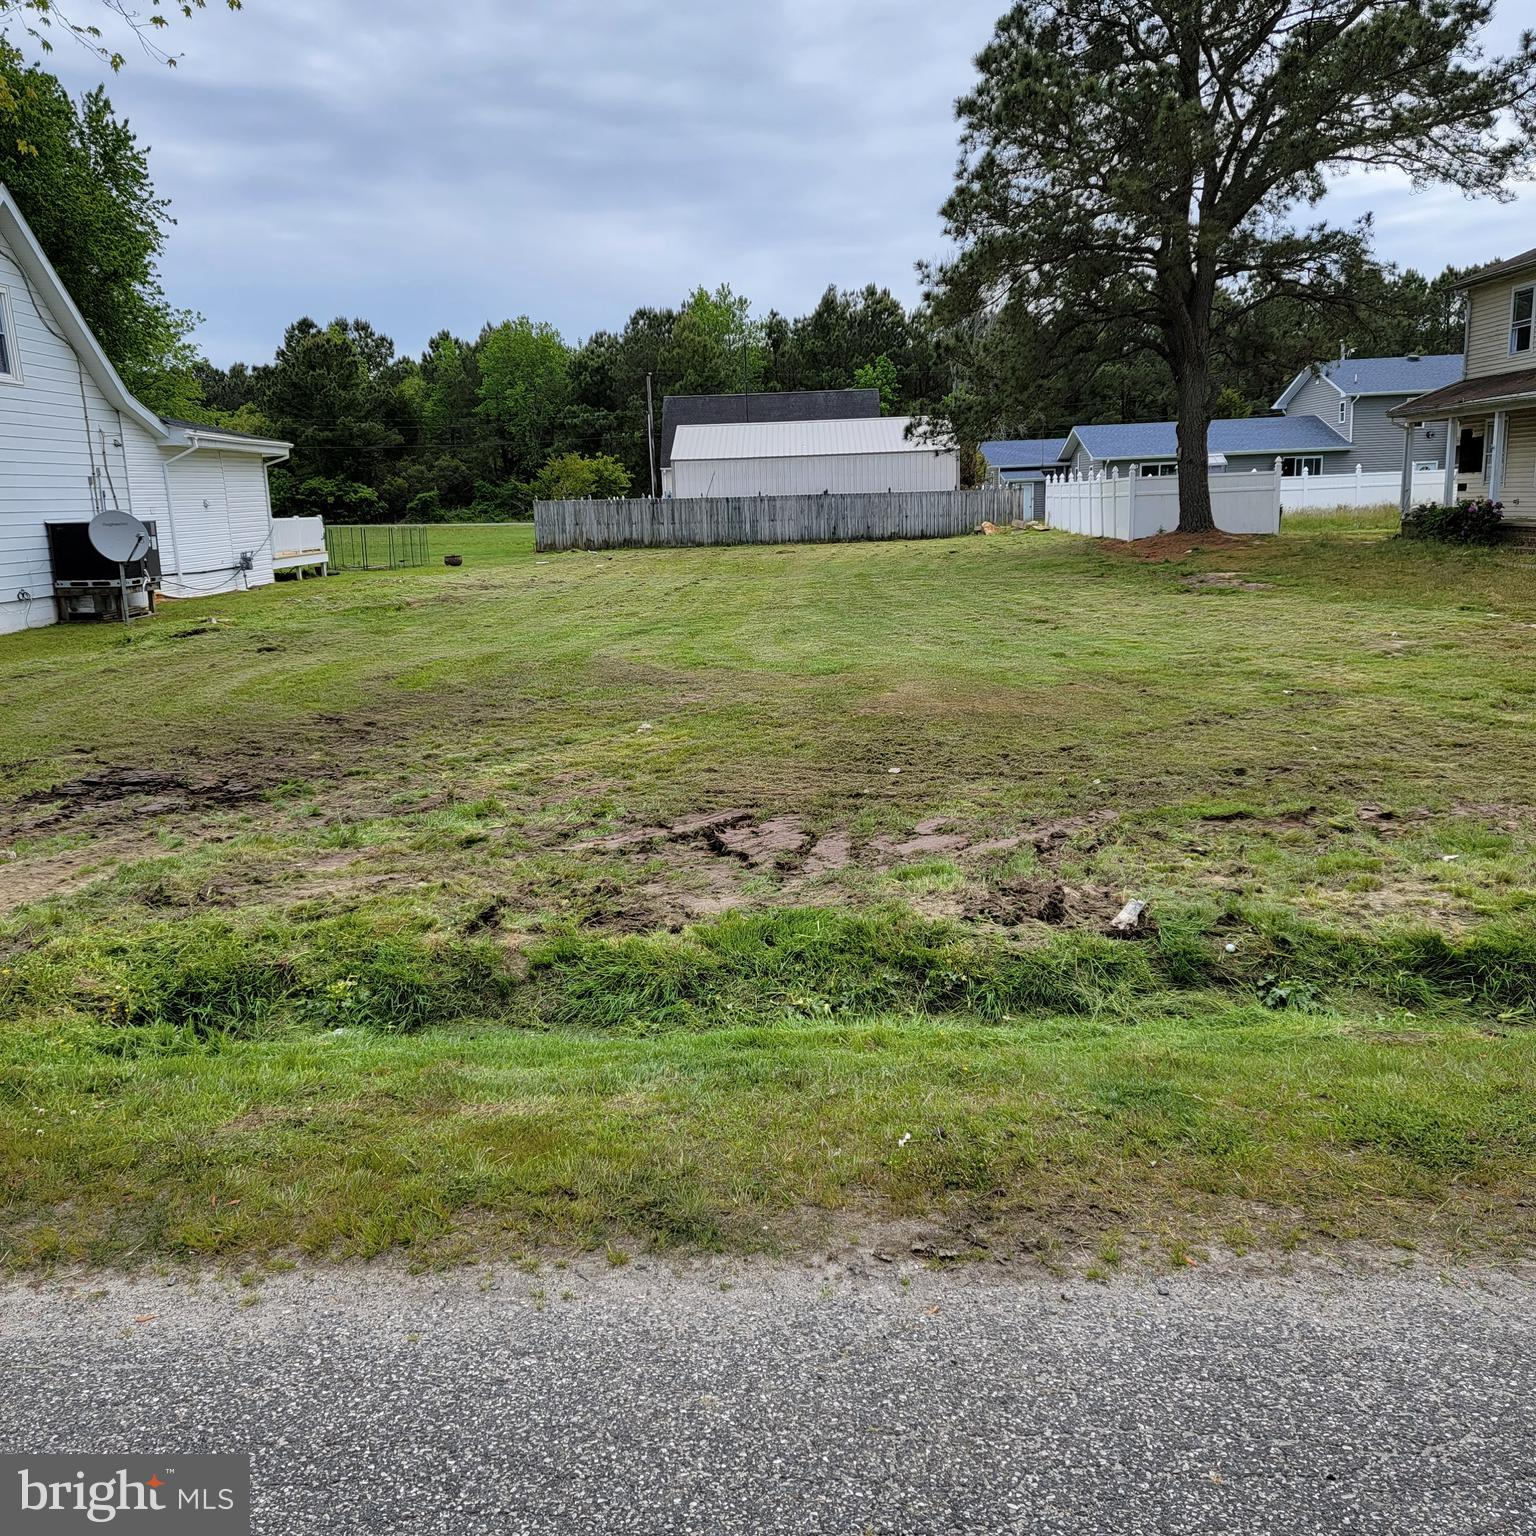 Location, Location, Location! Highly desirable West Ocean City Cape Isle of Wight location. No HOA fees here! Build your dream home! Close to schools, dining, shops, marinas, fishing venues and of course, the beaches. Just shy of 1/4 th acre. Comes with one EDU for public sewer. Lot is cleared. buyer is responsible for the installation of private well. No survey on file but most of these lots in this section are the same rectangular size of 60 ft W X 150 L. No sign on property. Neighbor in back already has a fence installed on rear side. Don't delay! Priced to sell. Make an offer today.